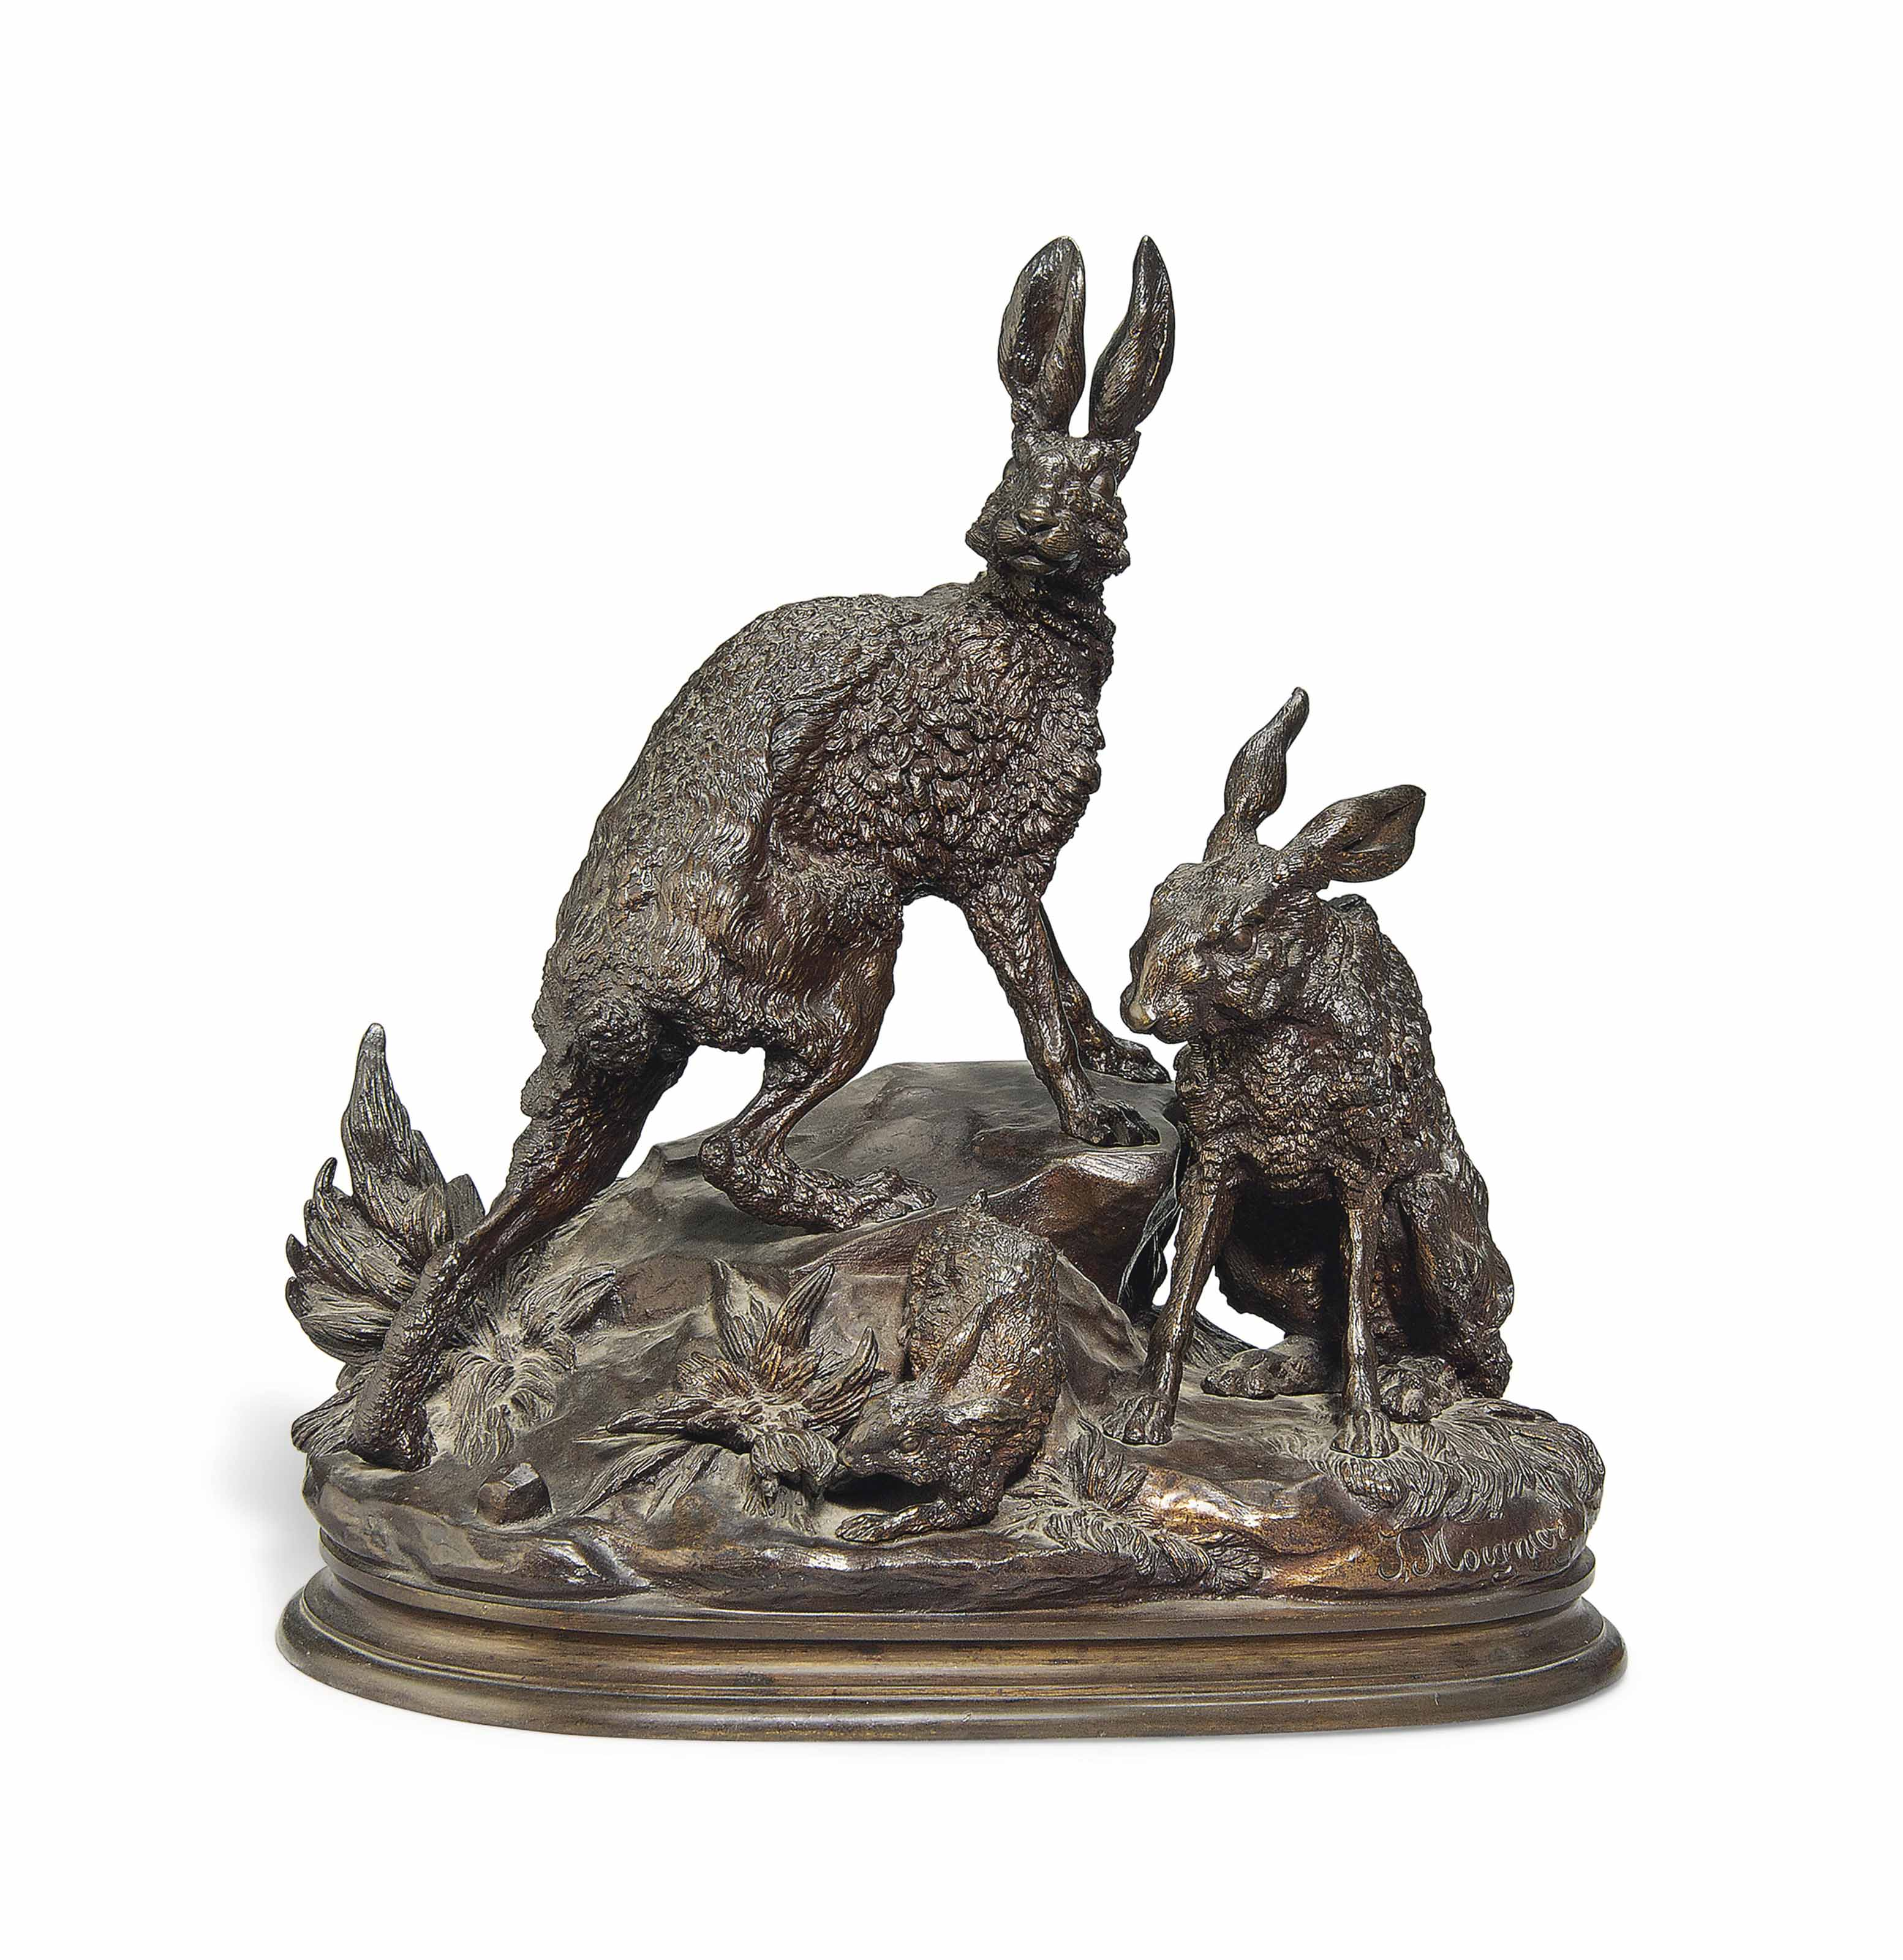 A RARE FRENCH BRONZE GROUP OF TWO HARES AND A RABBIT